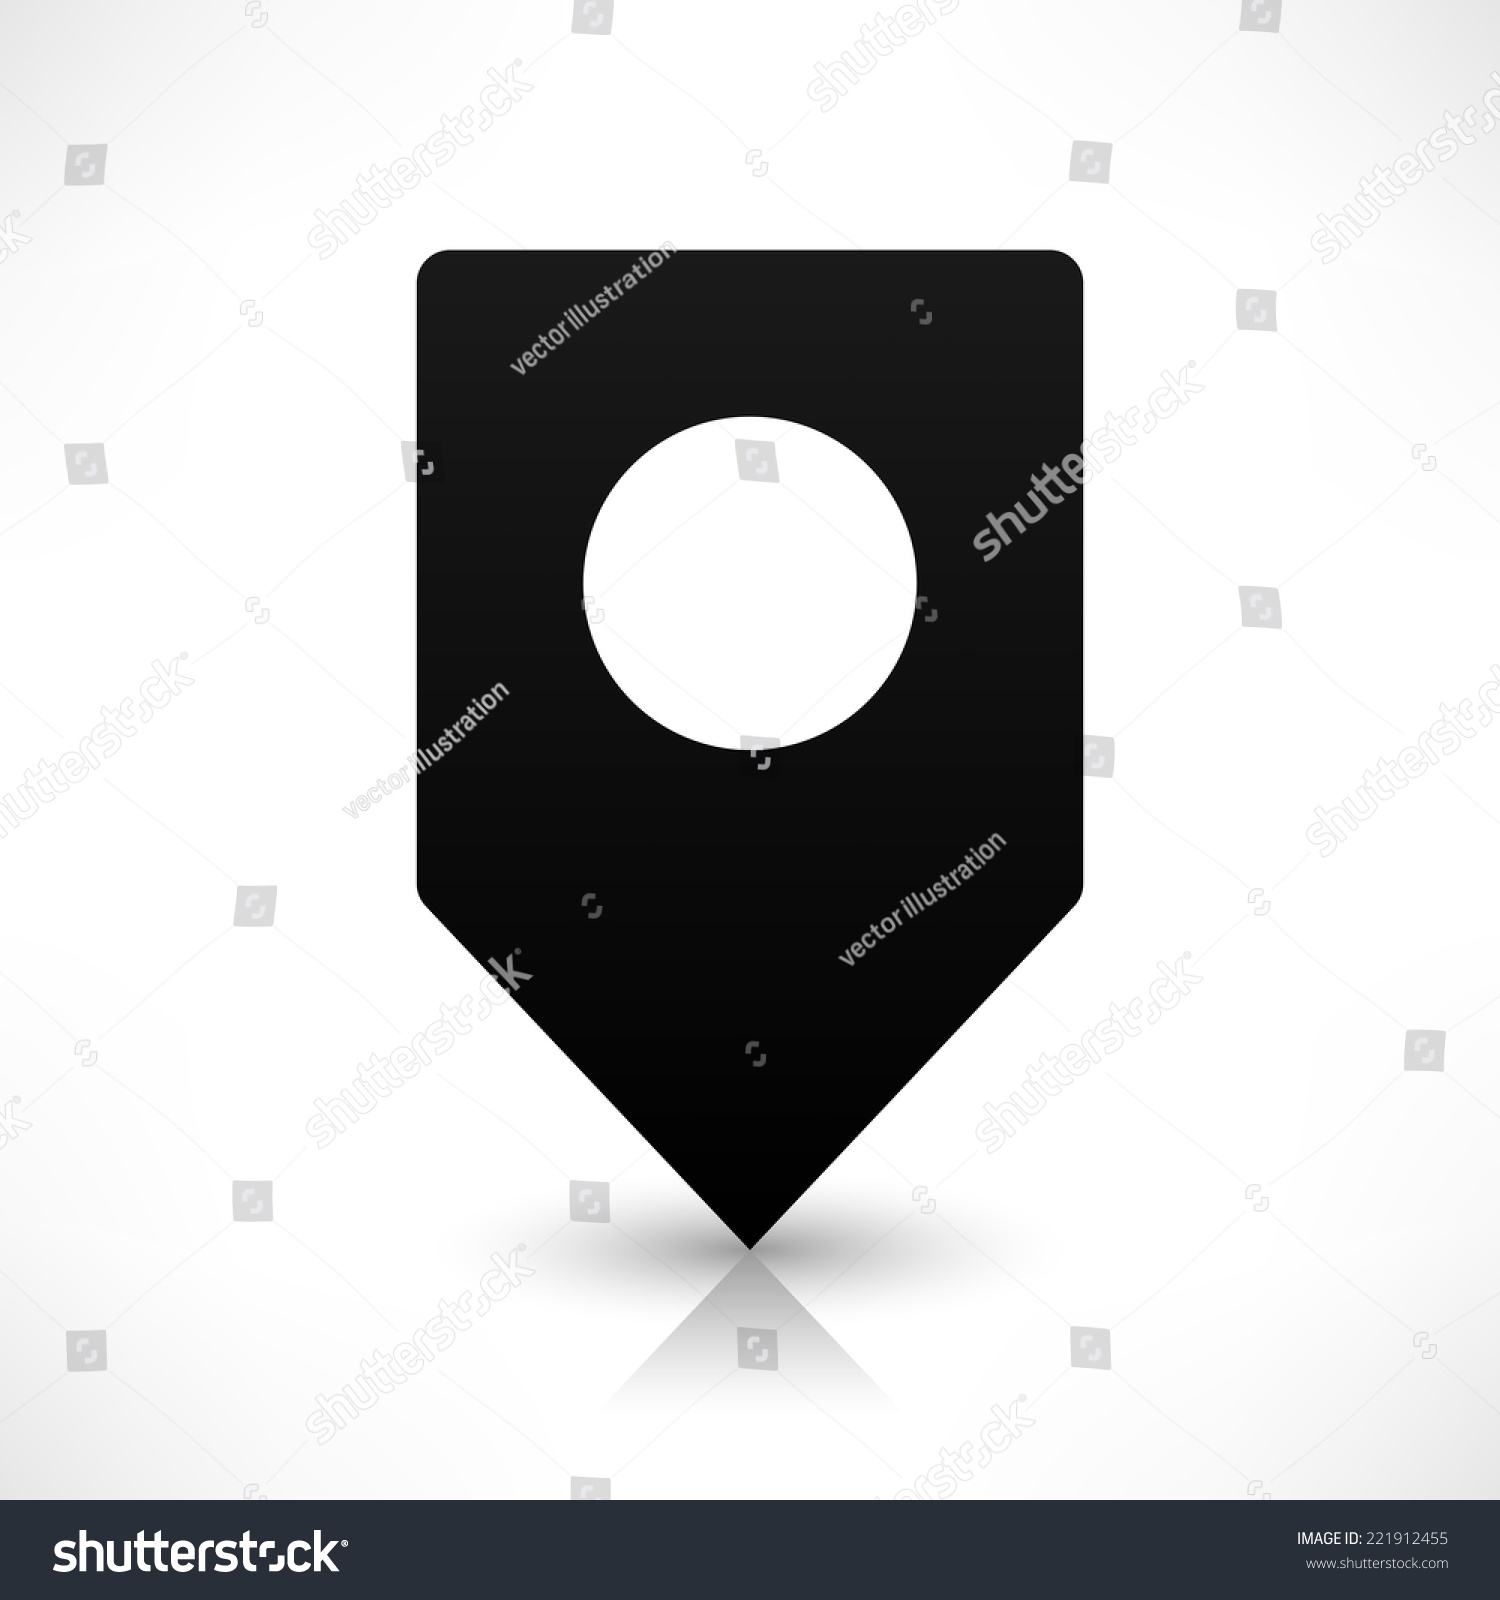 Black empty square map pins sign stock vector 221912455 shutterstock black empty square map pins sign location icon with circular blank copy space and gray shadow buycottarizona Gallery